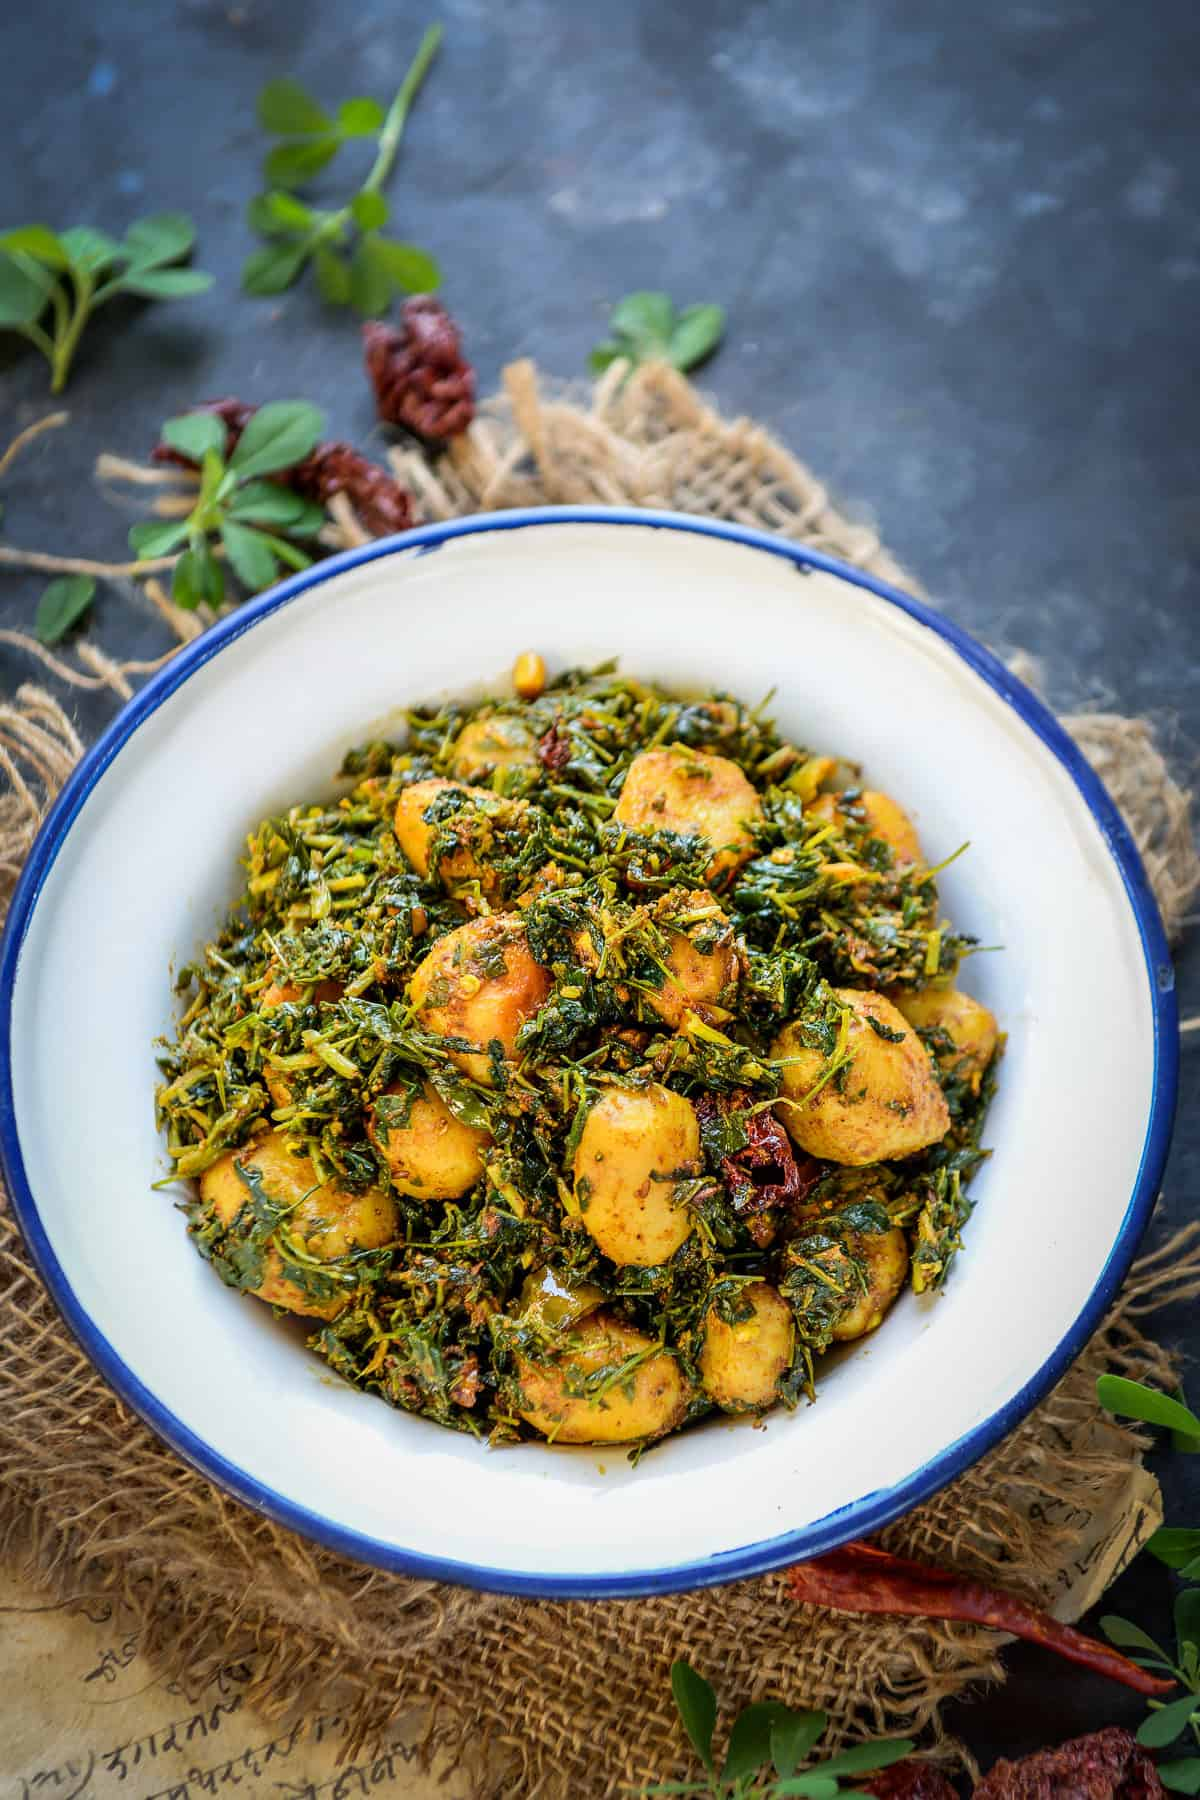 Aloo methi served in a bowl.